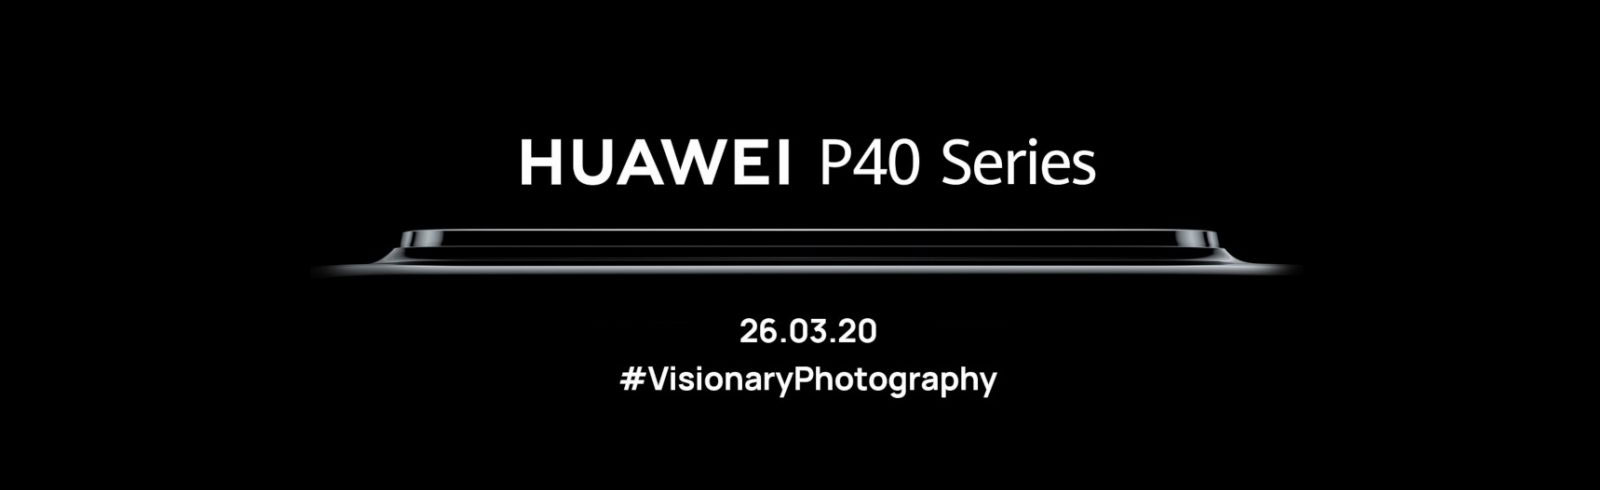 Confirmed: Huawei P40 and Huawei P40 Pro will be unveiled on March 26